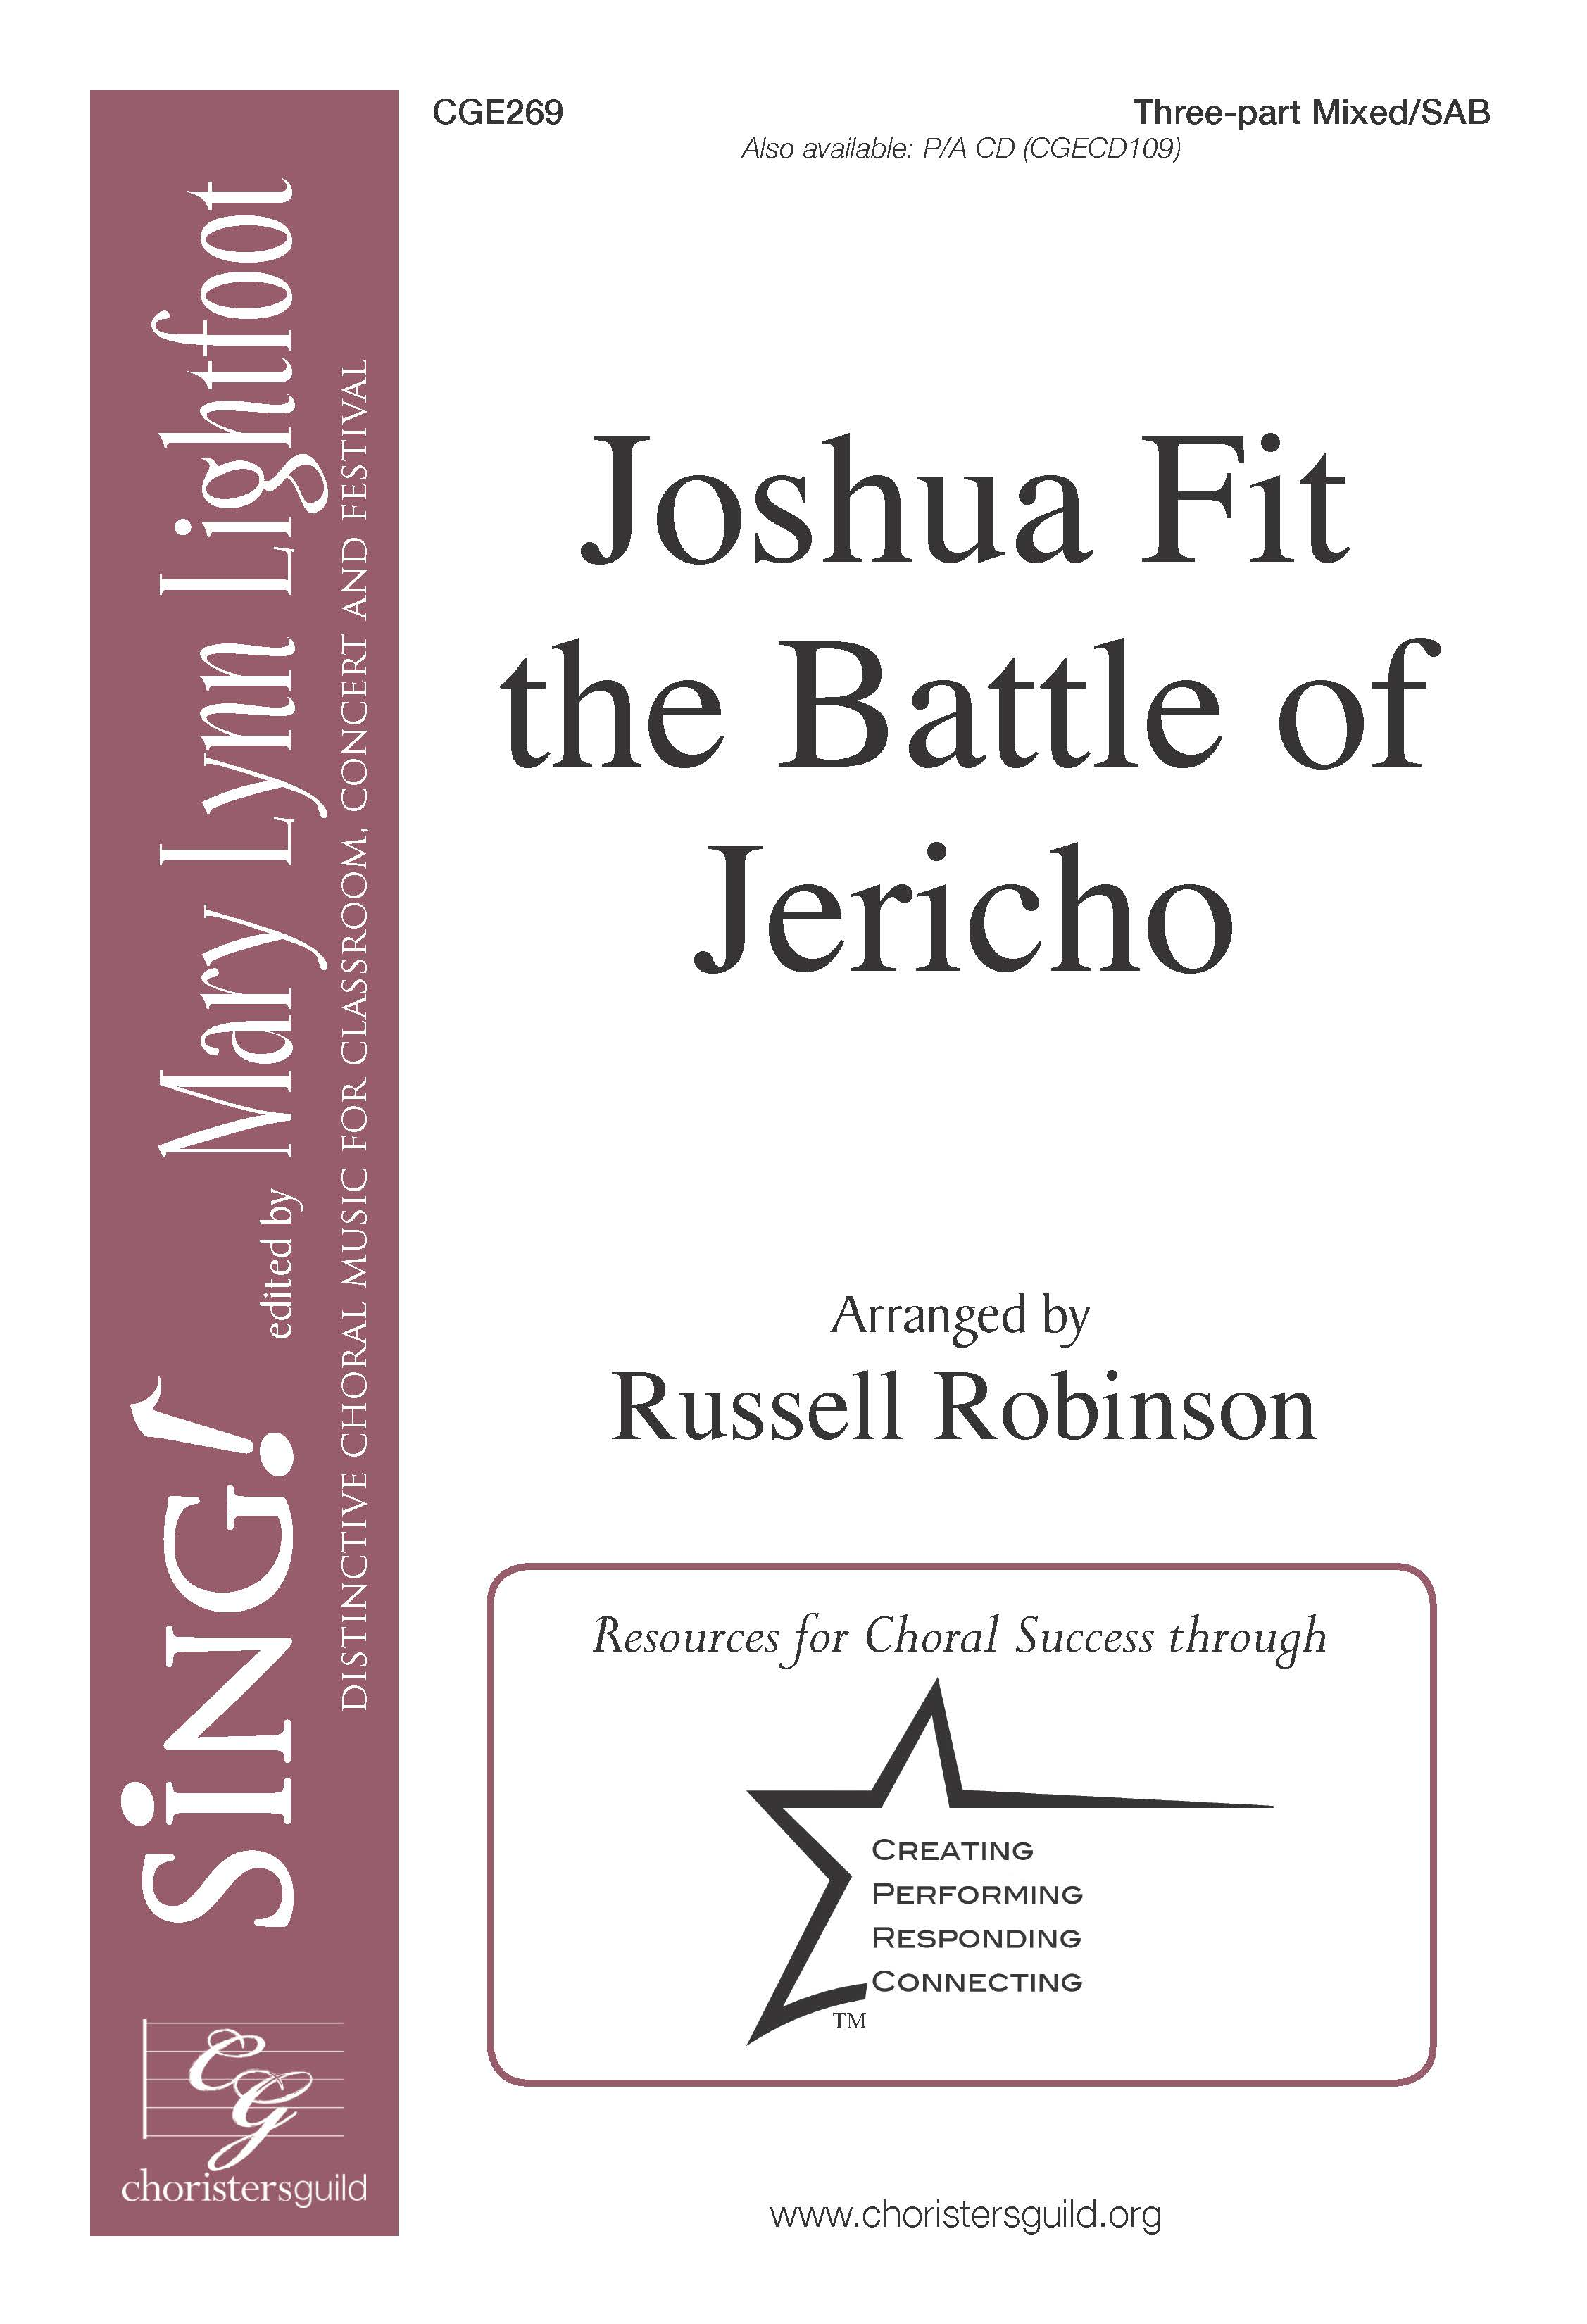 Joshua Fit the Battle of Jericho